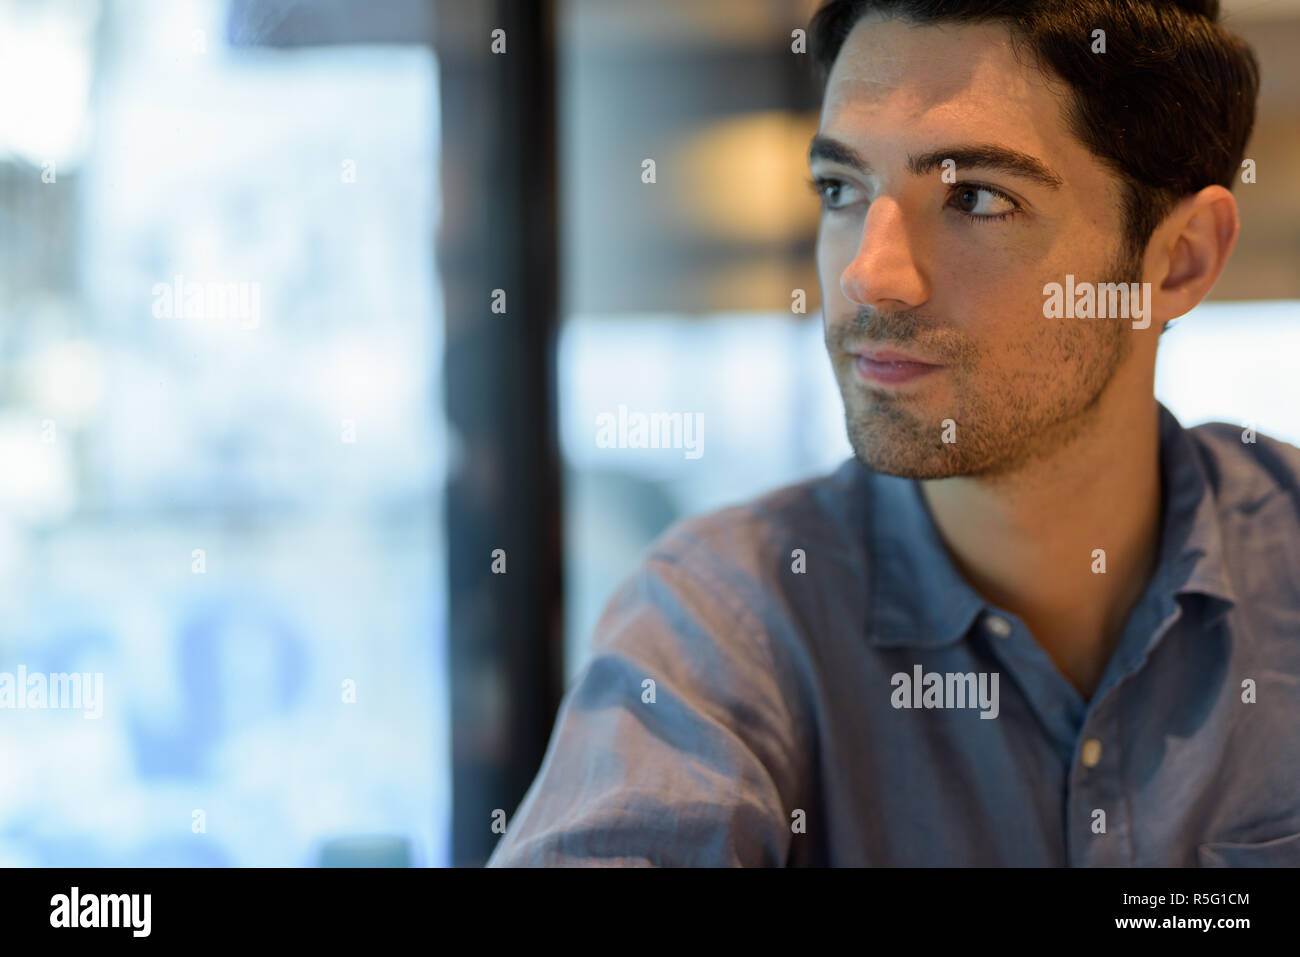 Man sitting and looking through window while thinking - Stock Image